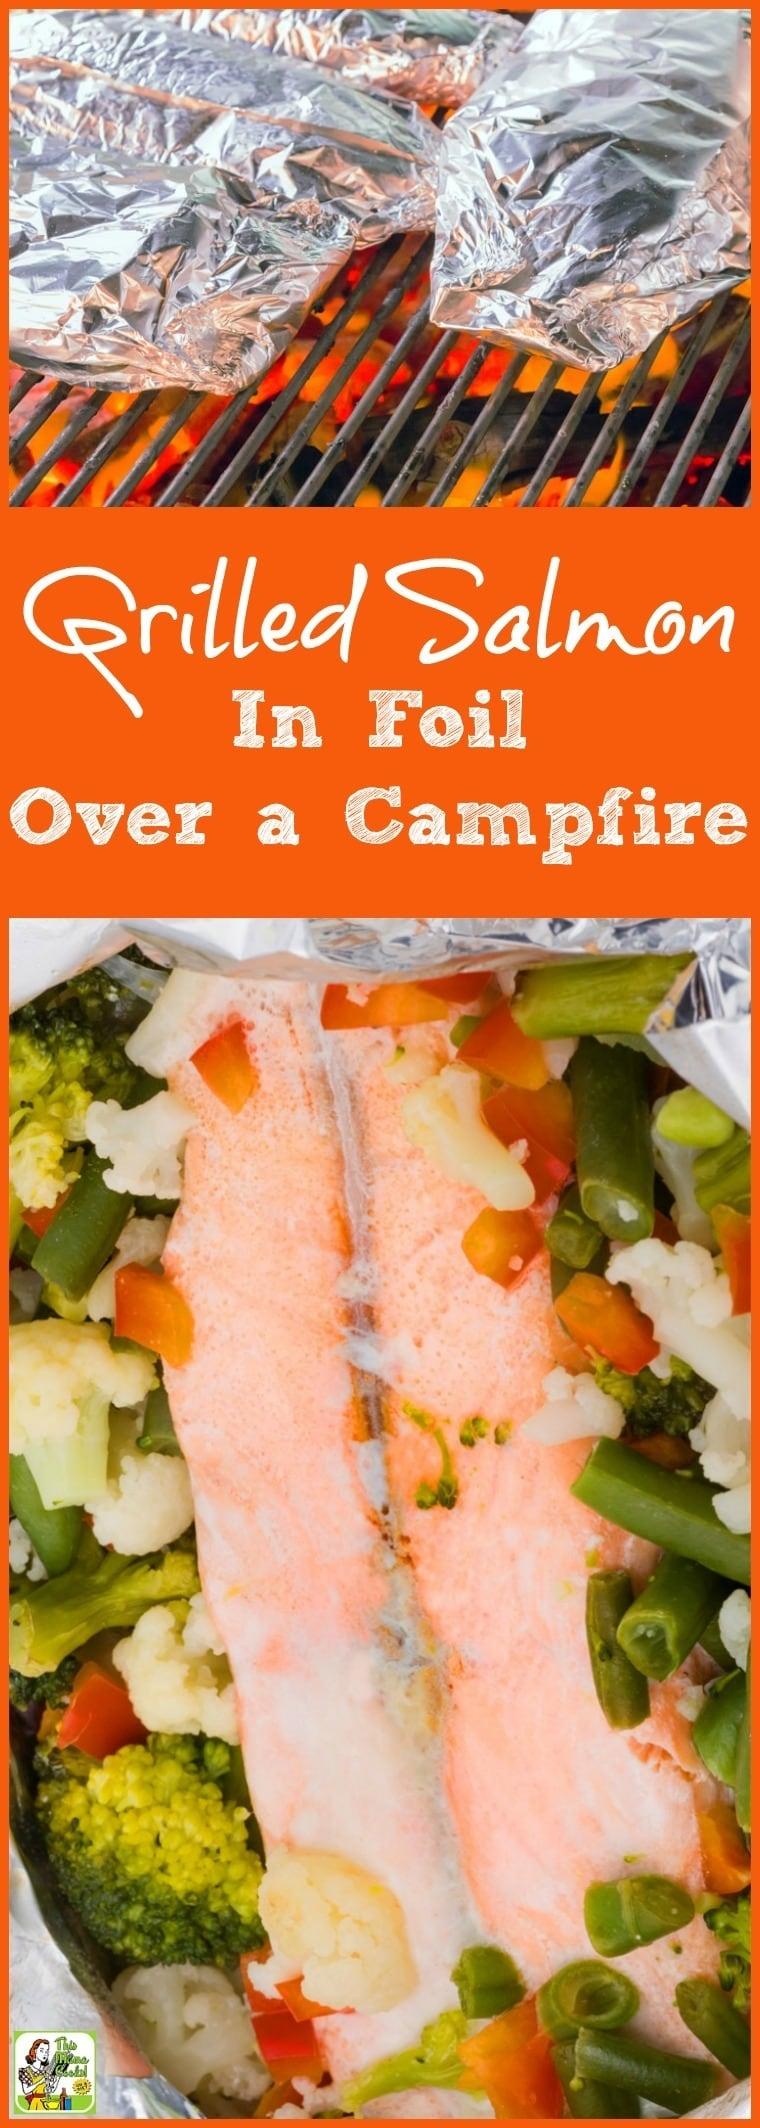 It's So Easy To Make This Grilled Salmon In Foil Over A Campfire When You'